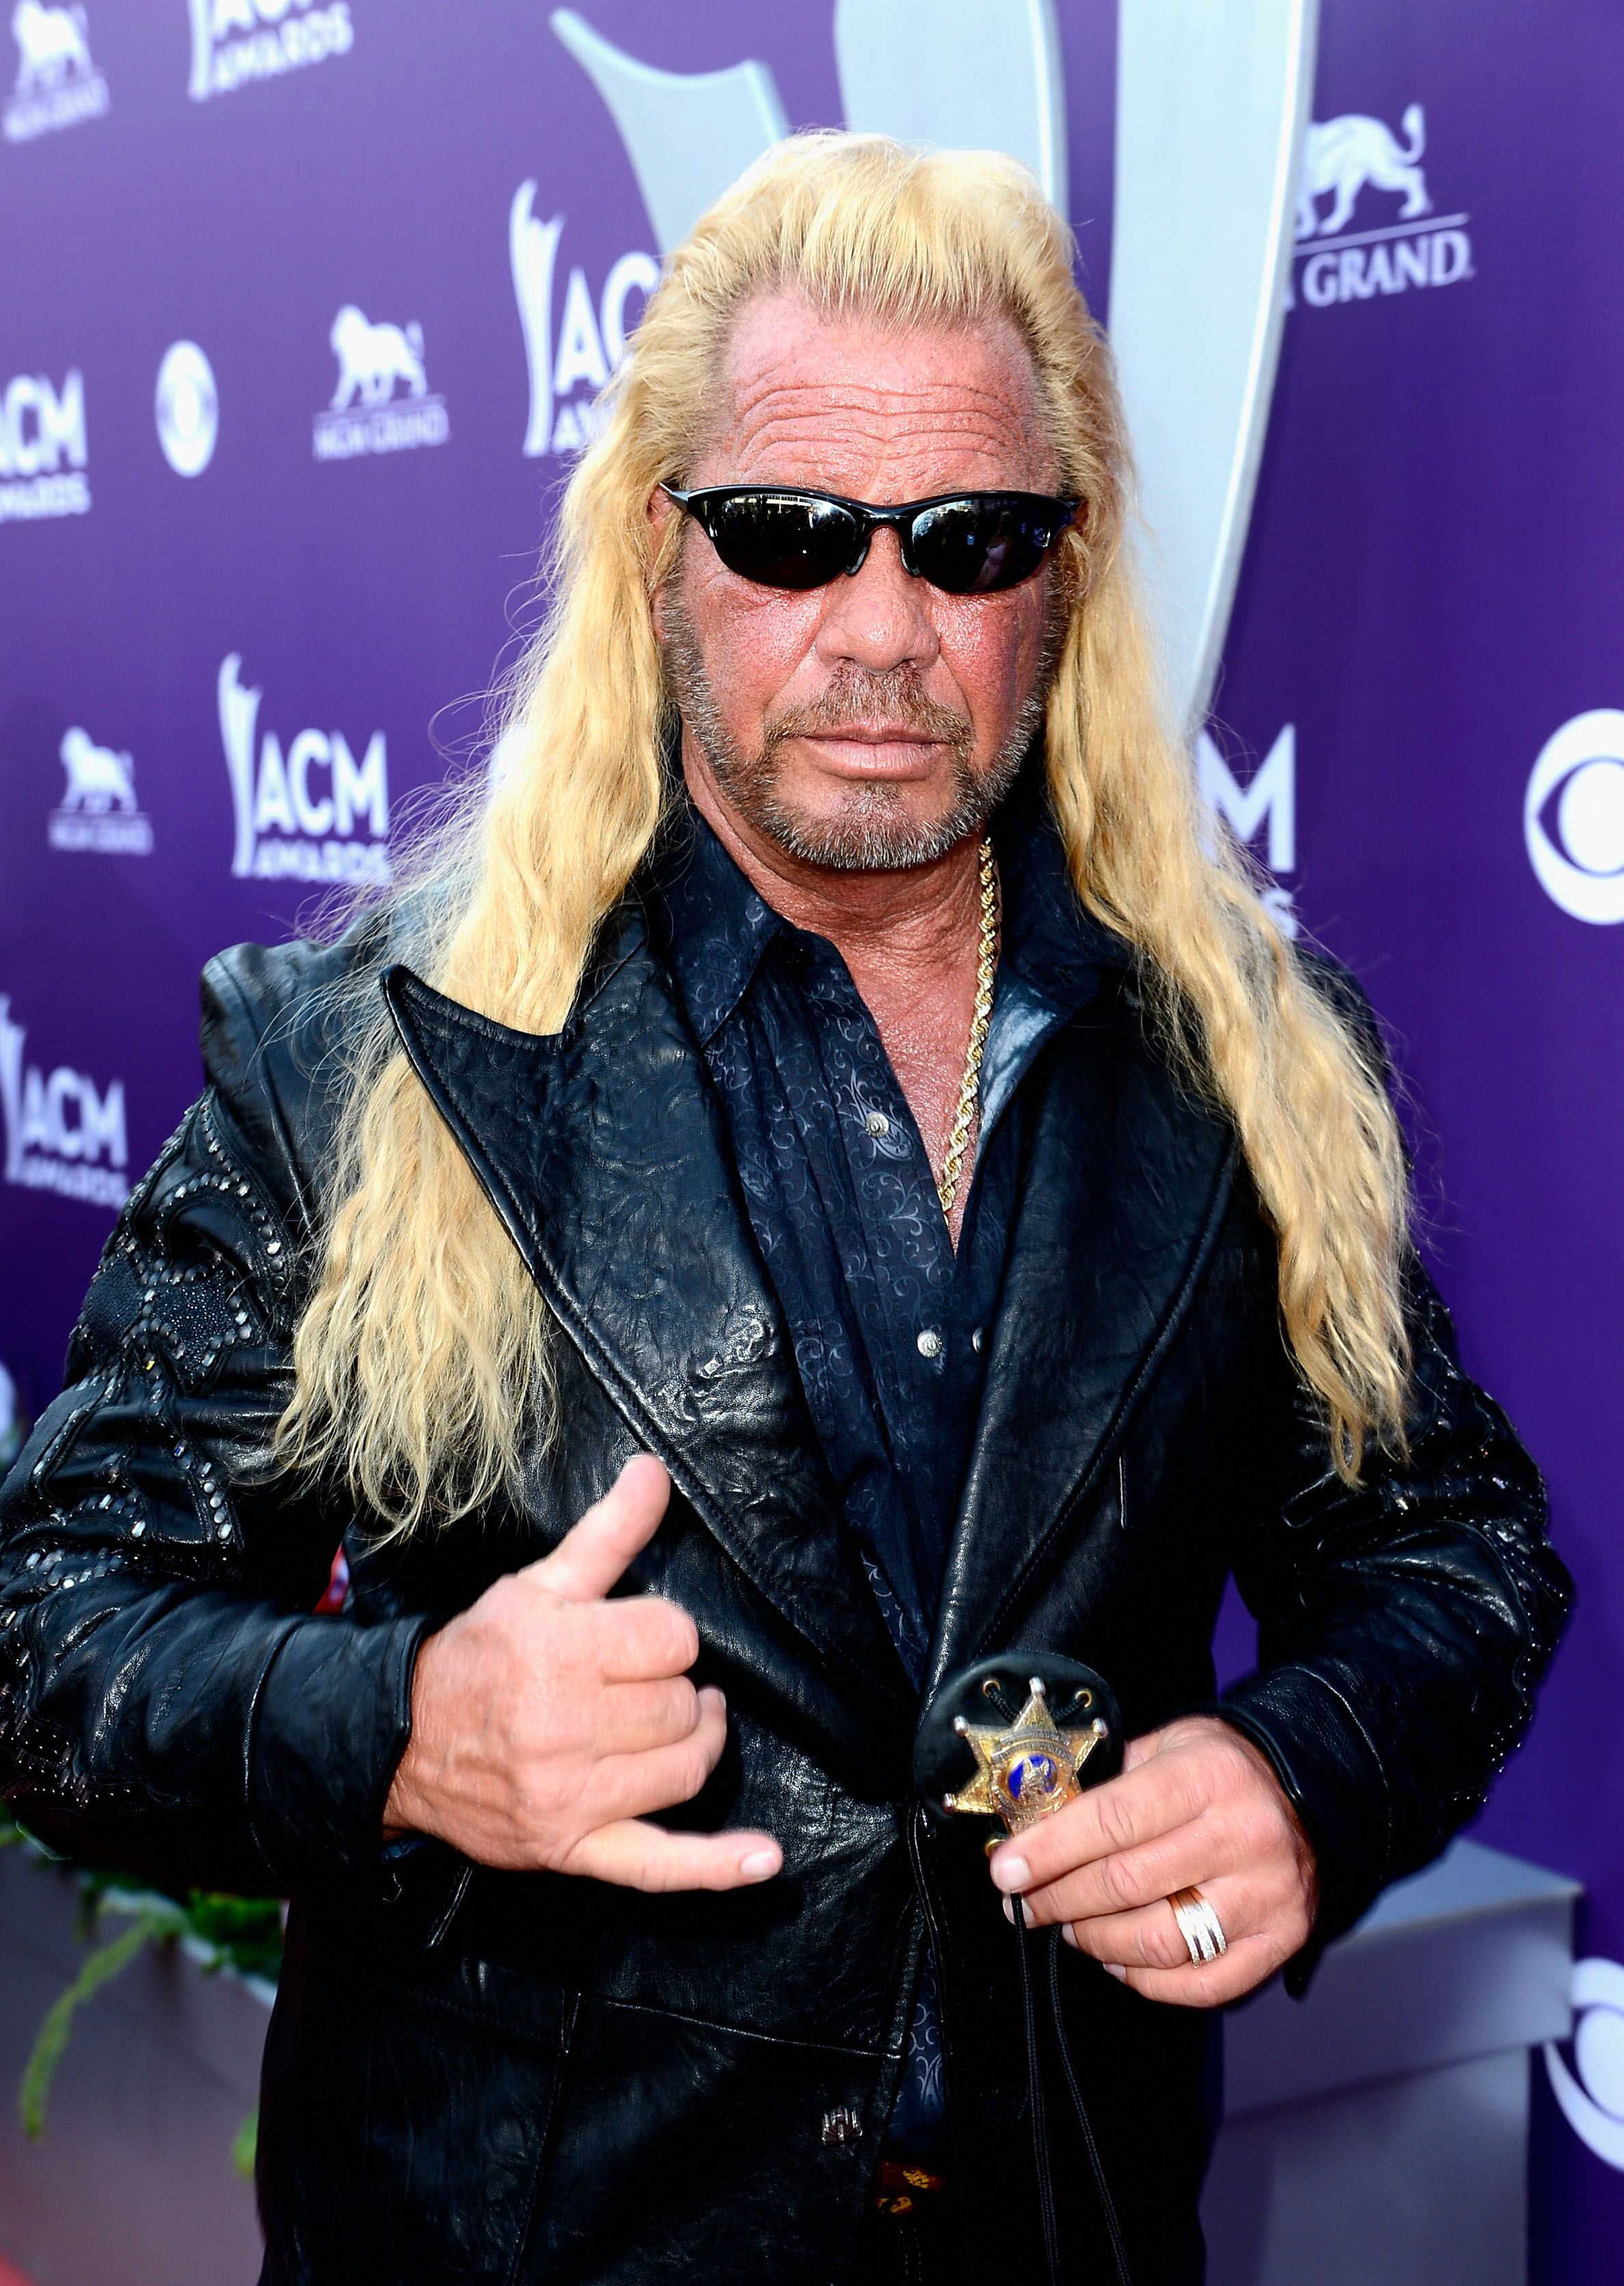 Dog the Bounty Hunter arrives at the 48th Annual Academy of Country Music Awards at the MGM Grand Garden Arena | Getty Images